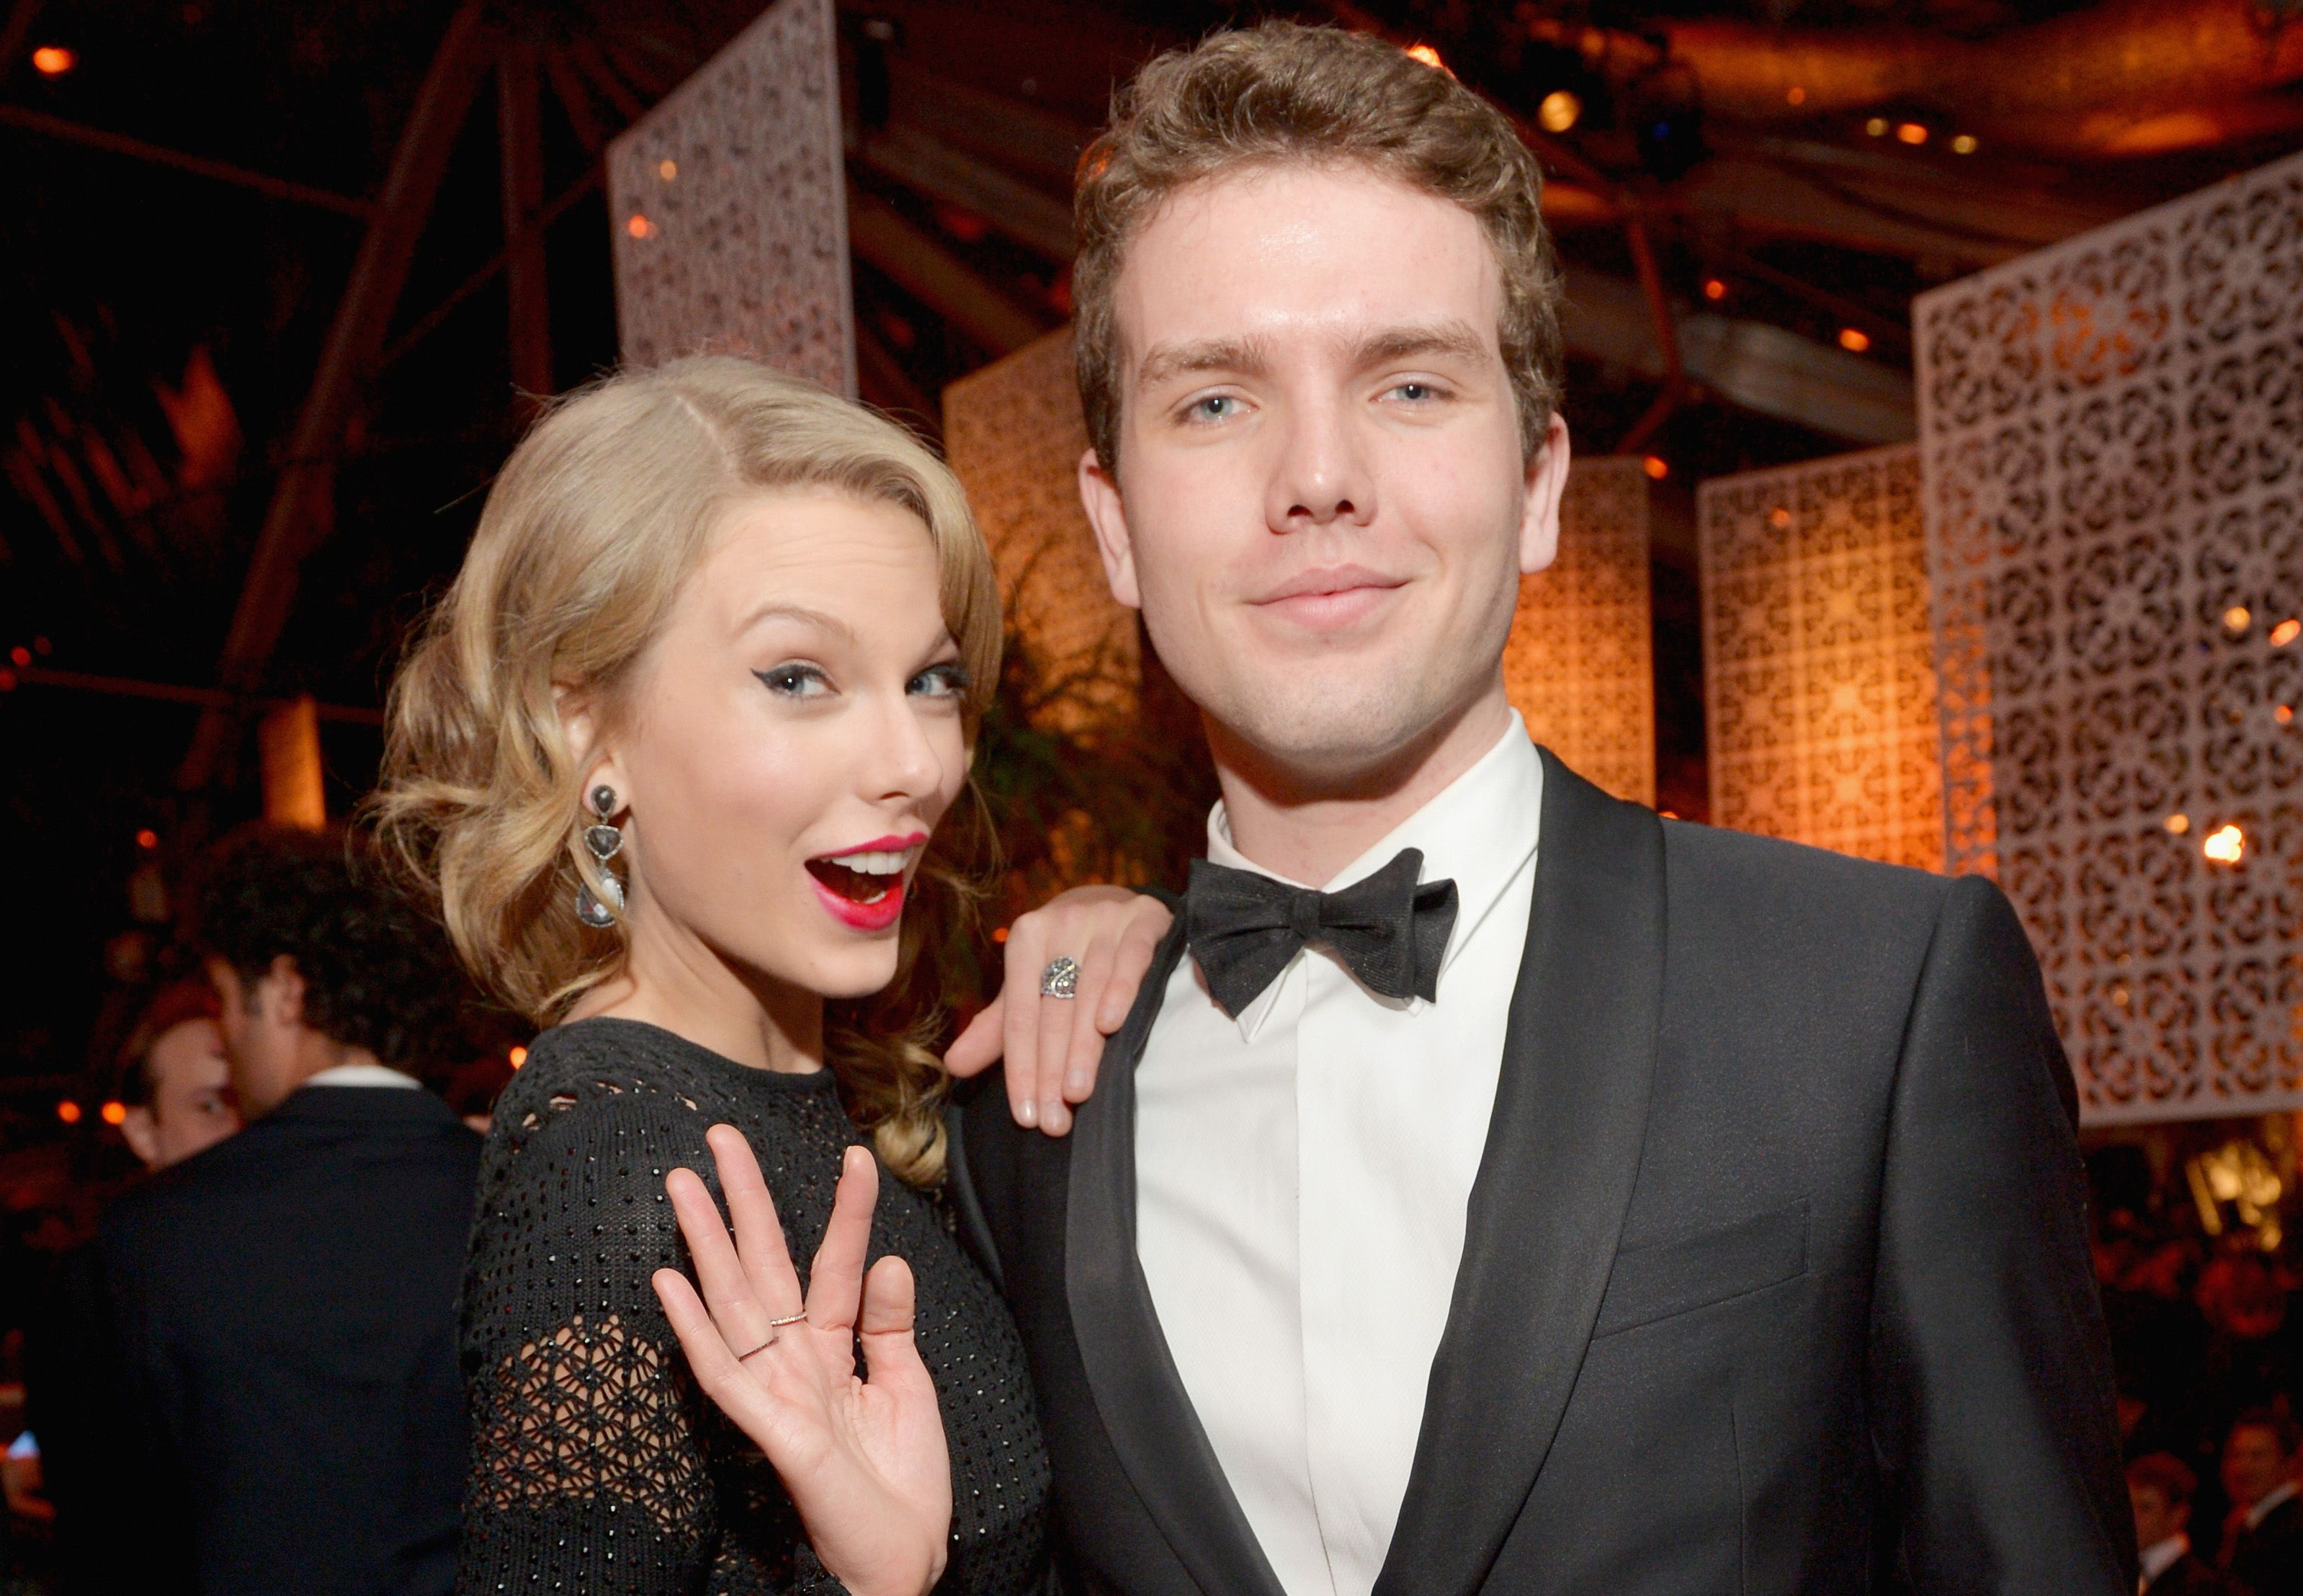 Watch Taylor Swift S Brother Austin Make His Acting Debut Austin Swift Makes His Acting Debut In I T Trailer